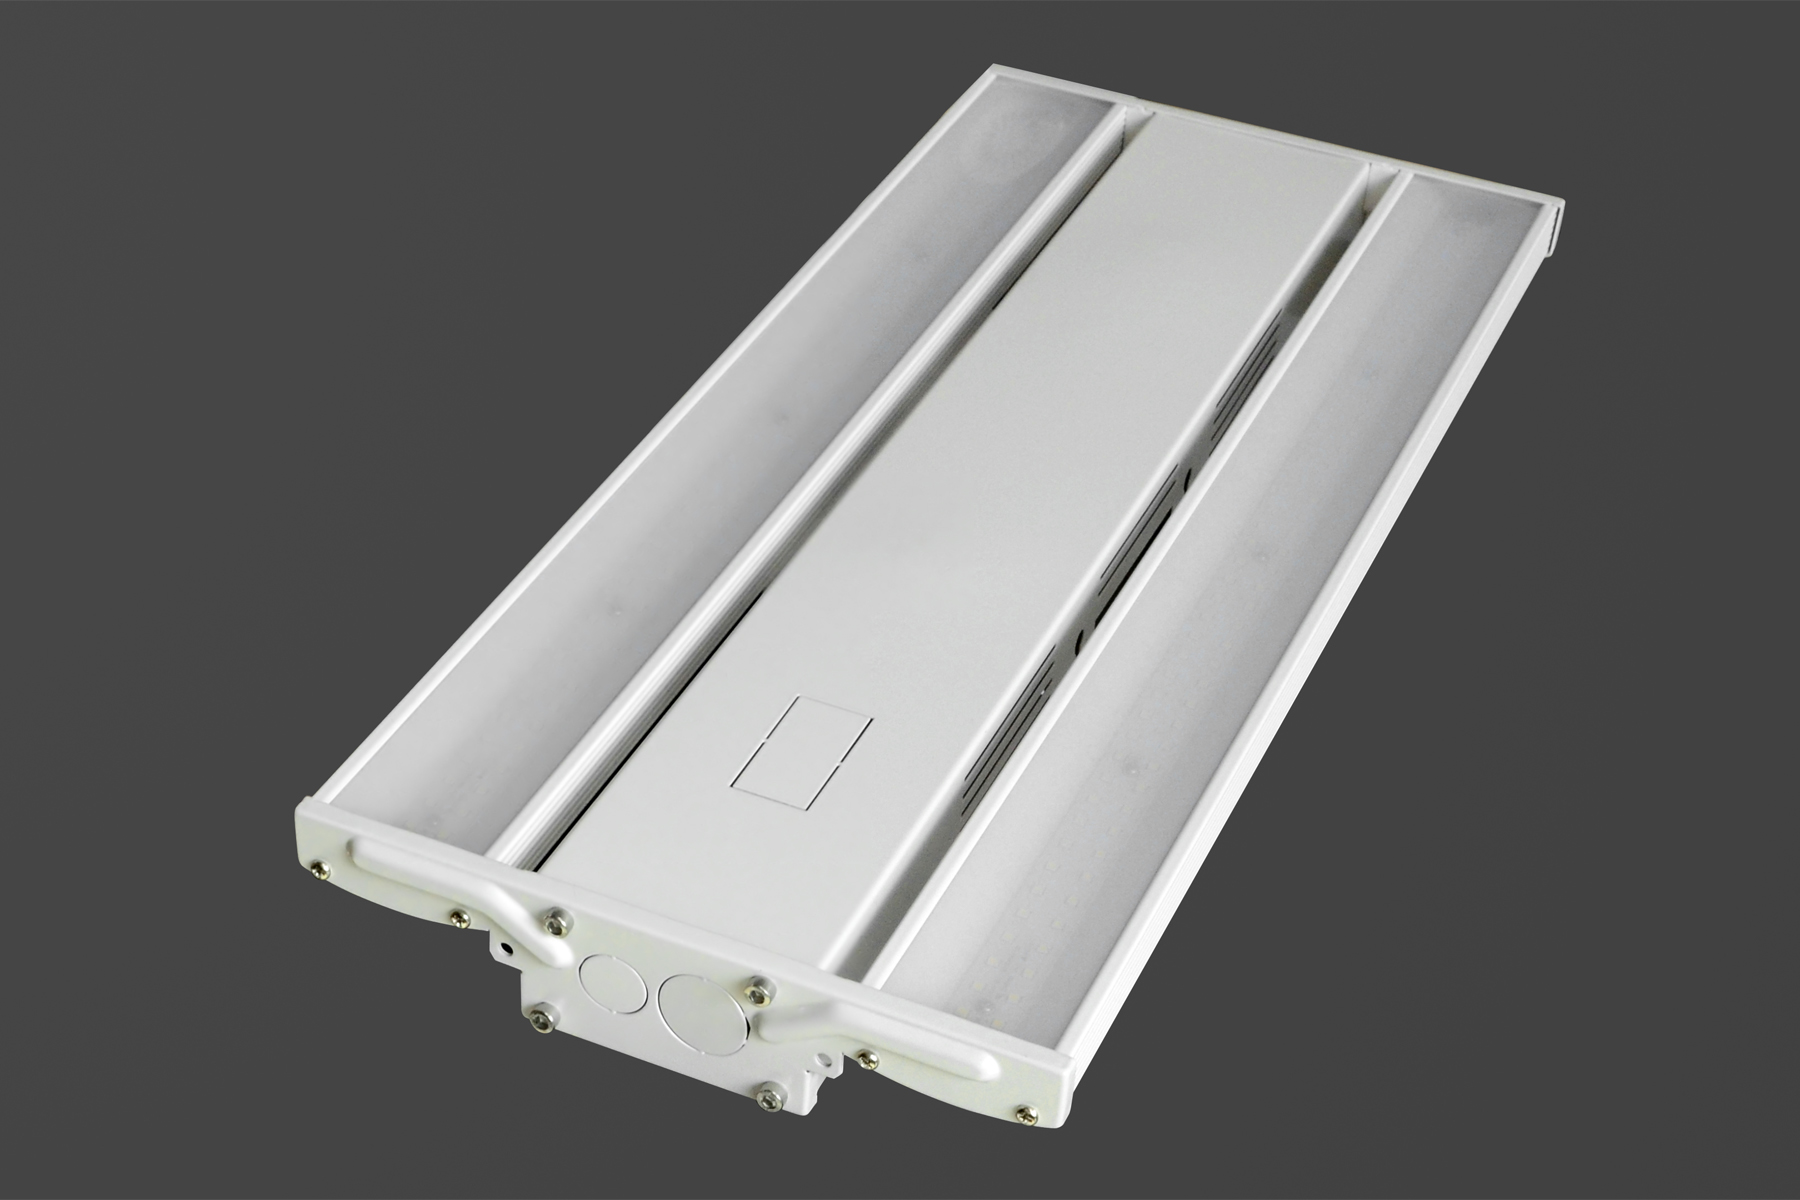 100W Linear High Bay - Low Profile